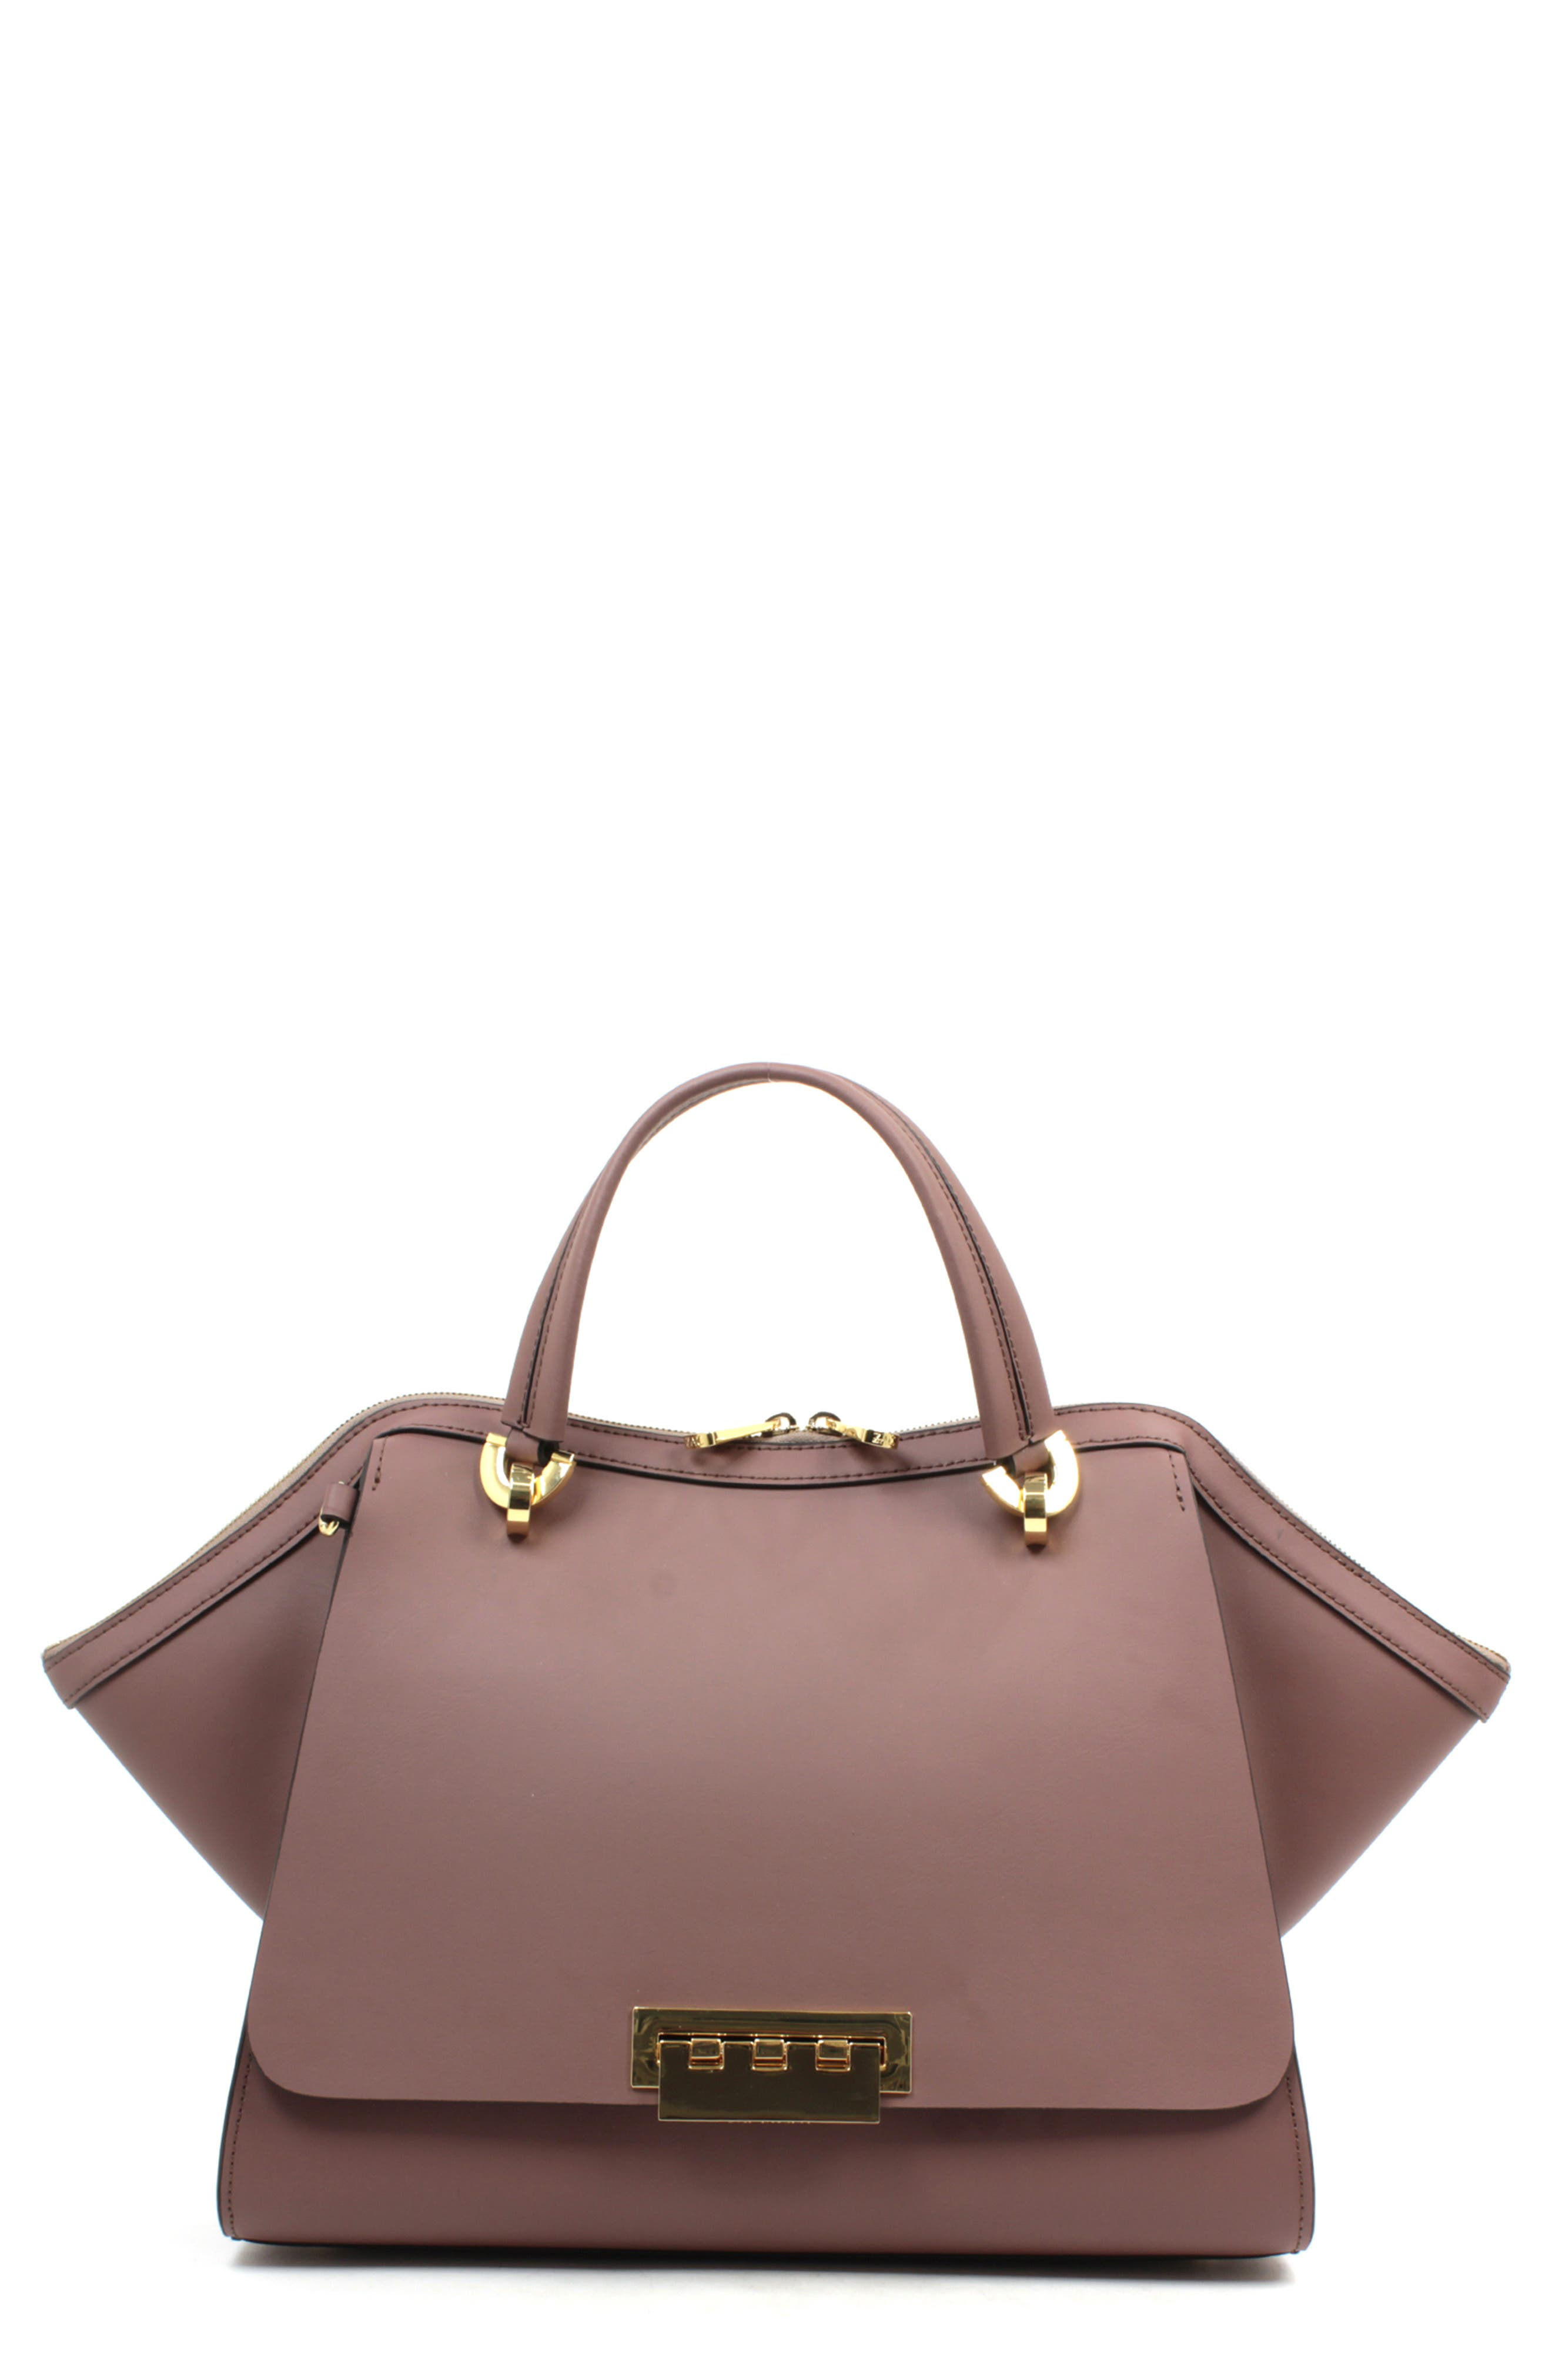 ZAC ZAC POSEN, 'Eartha Jumbo' Double Handle Satchel, Main thumbnail 1, color, FRENCH ROAST